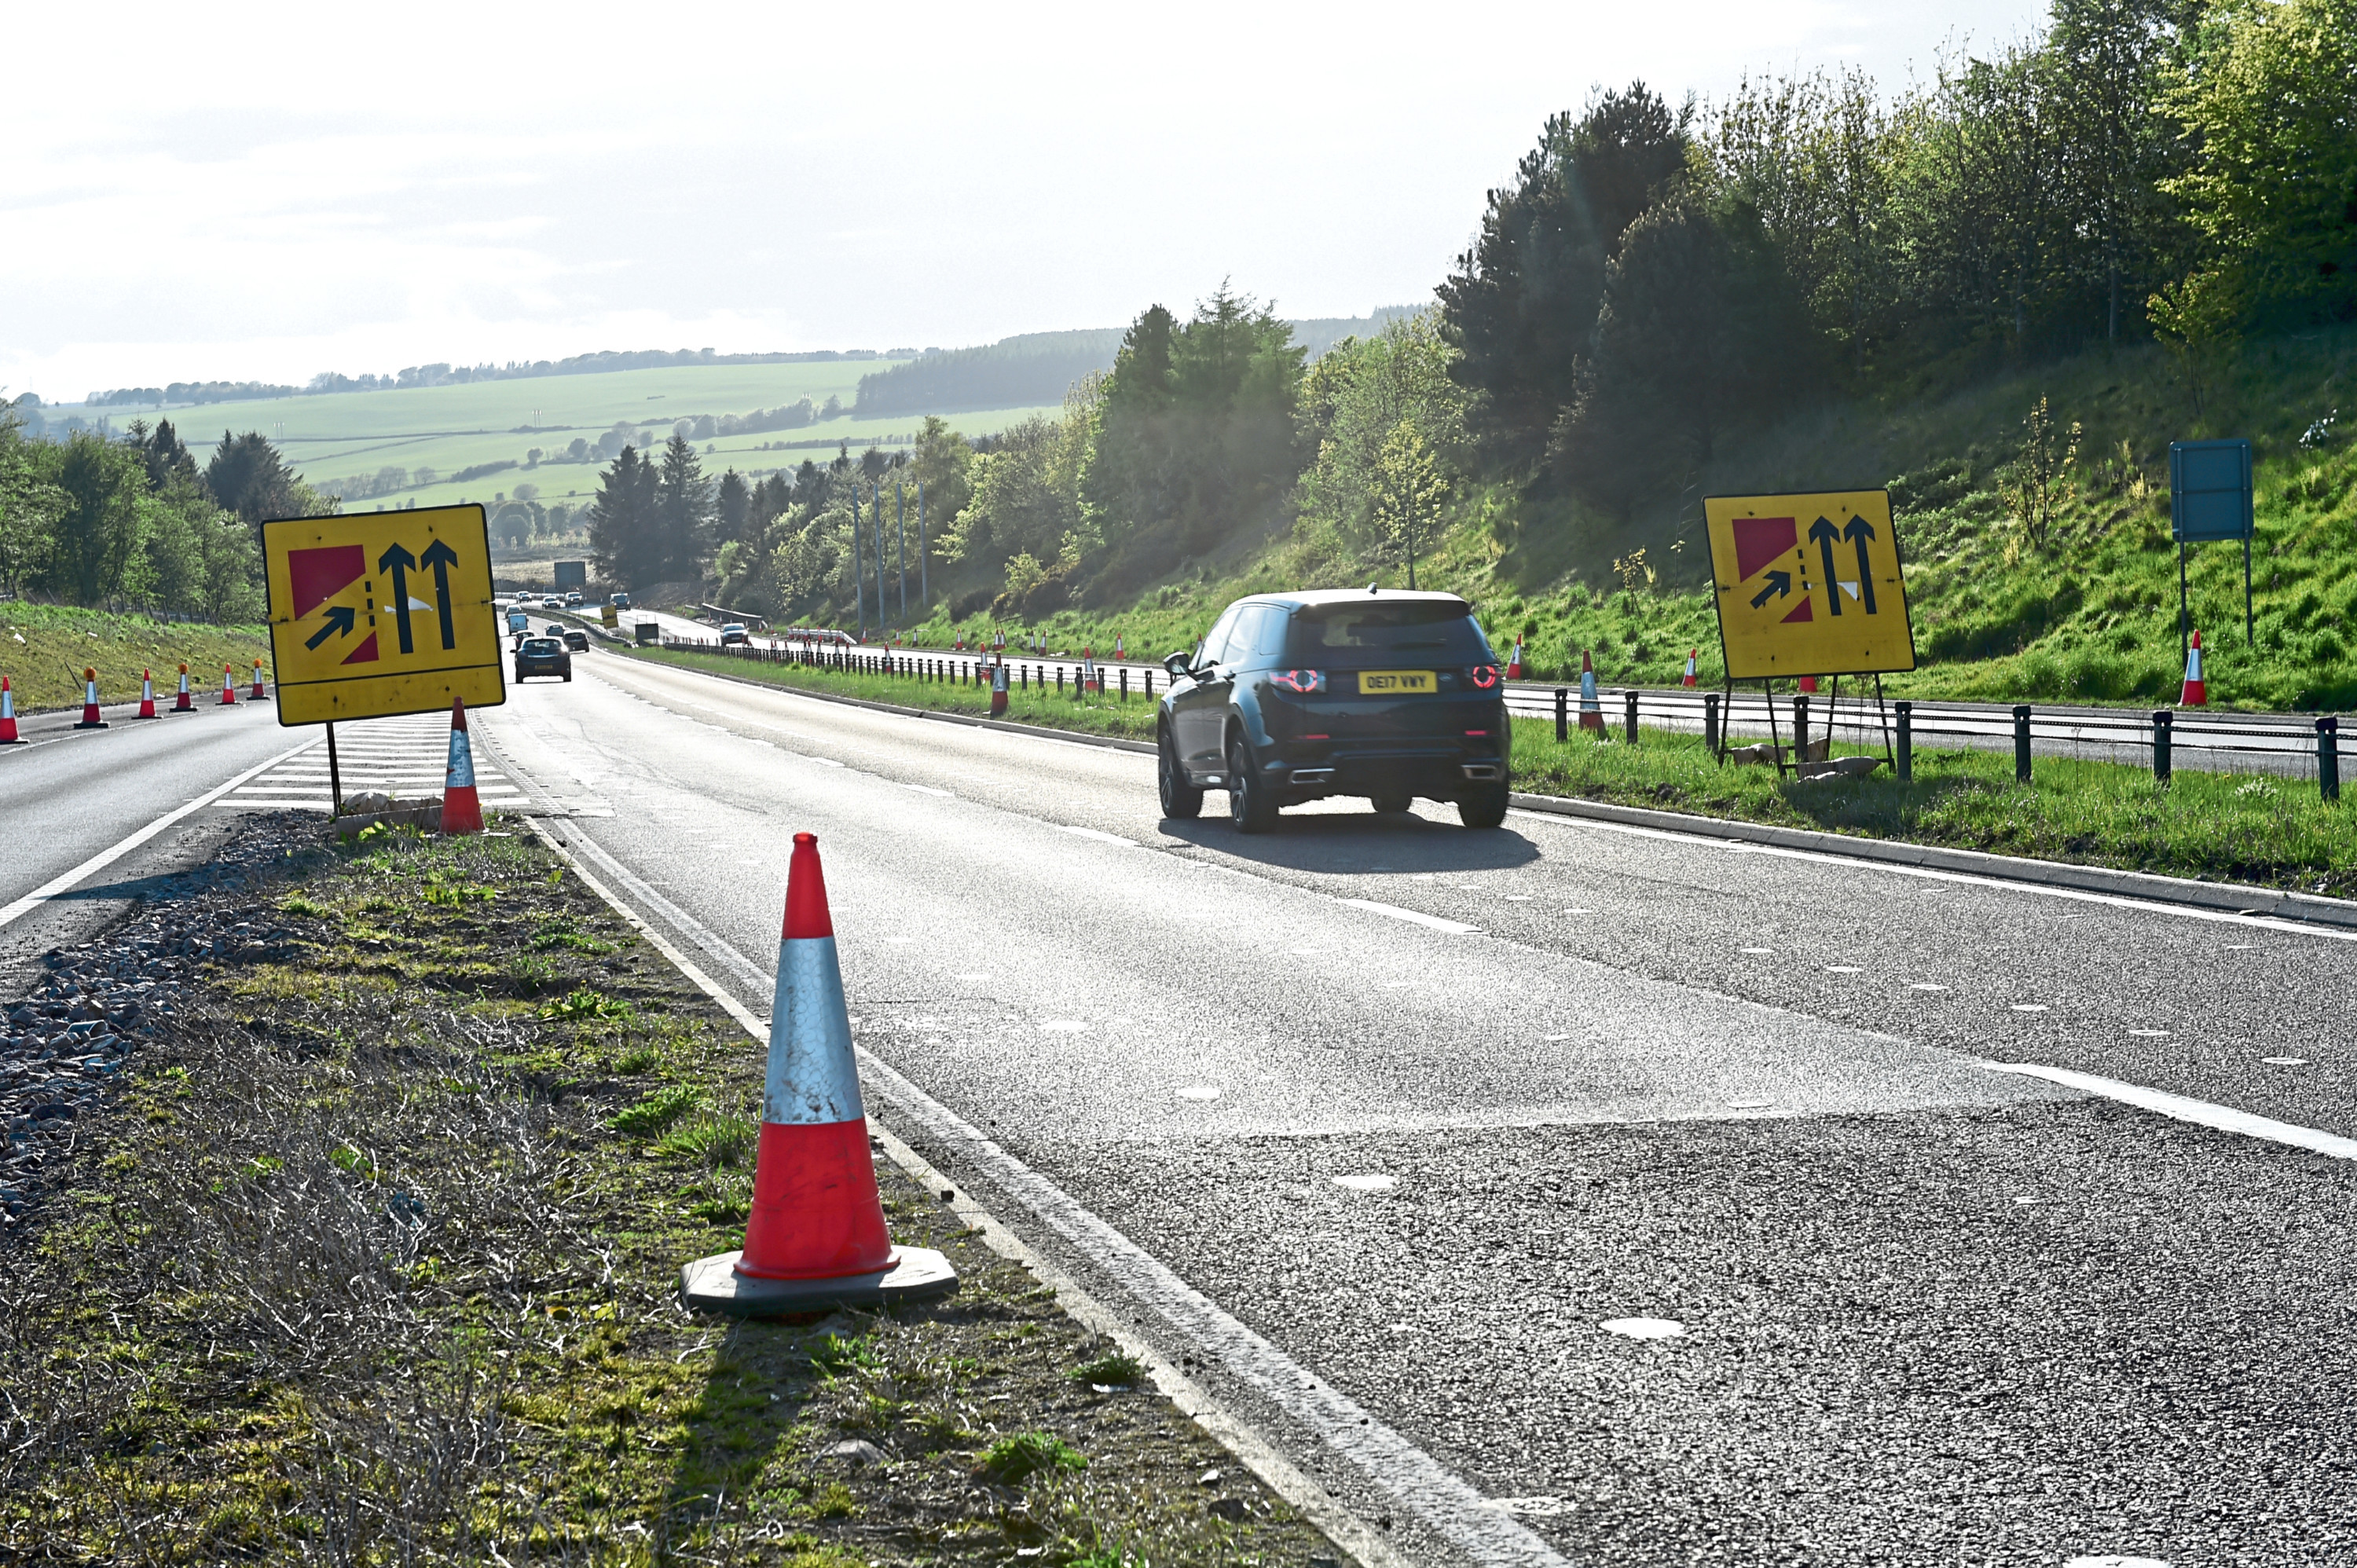 Roadworks are going to be starting at Cowie Bridge